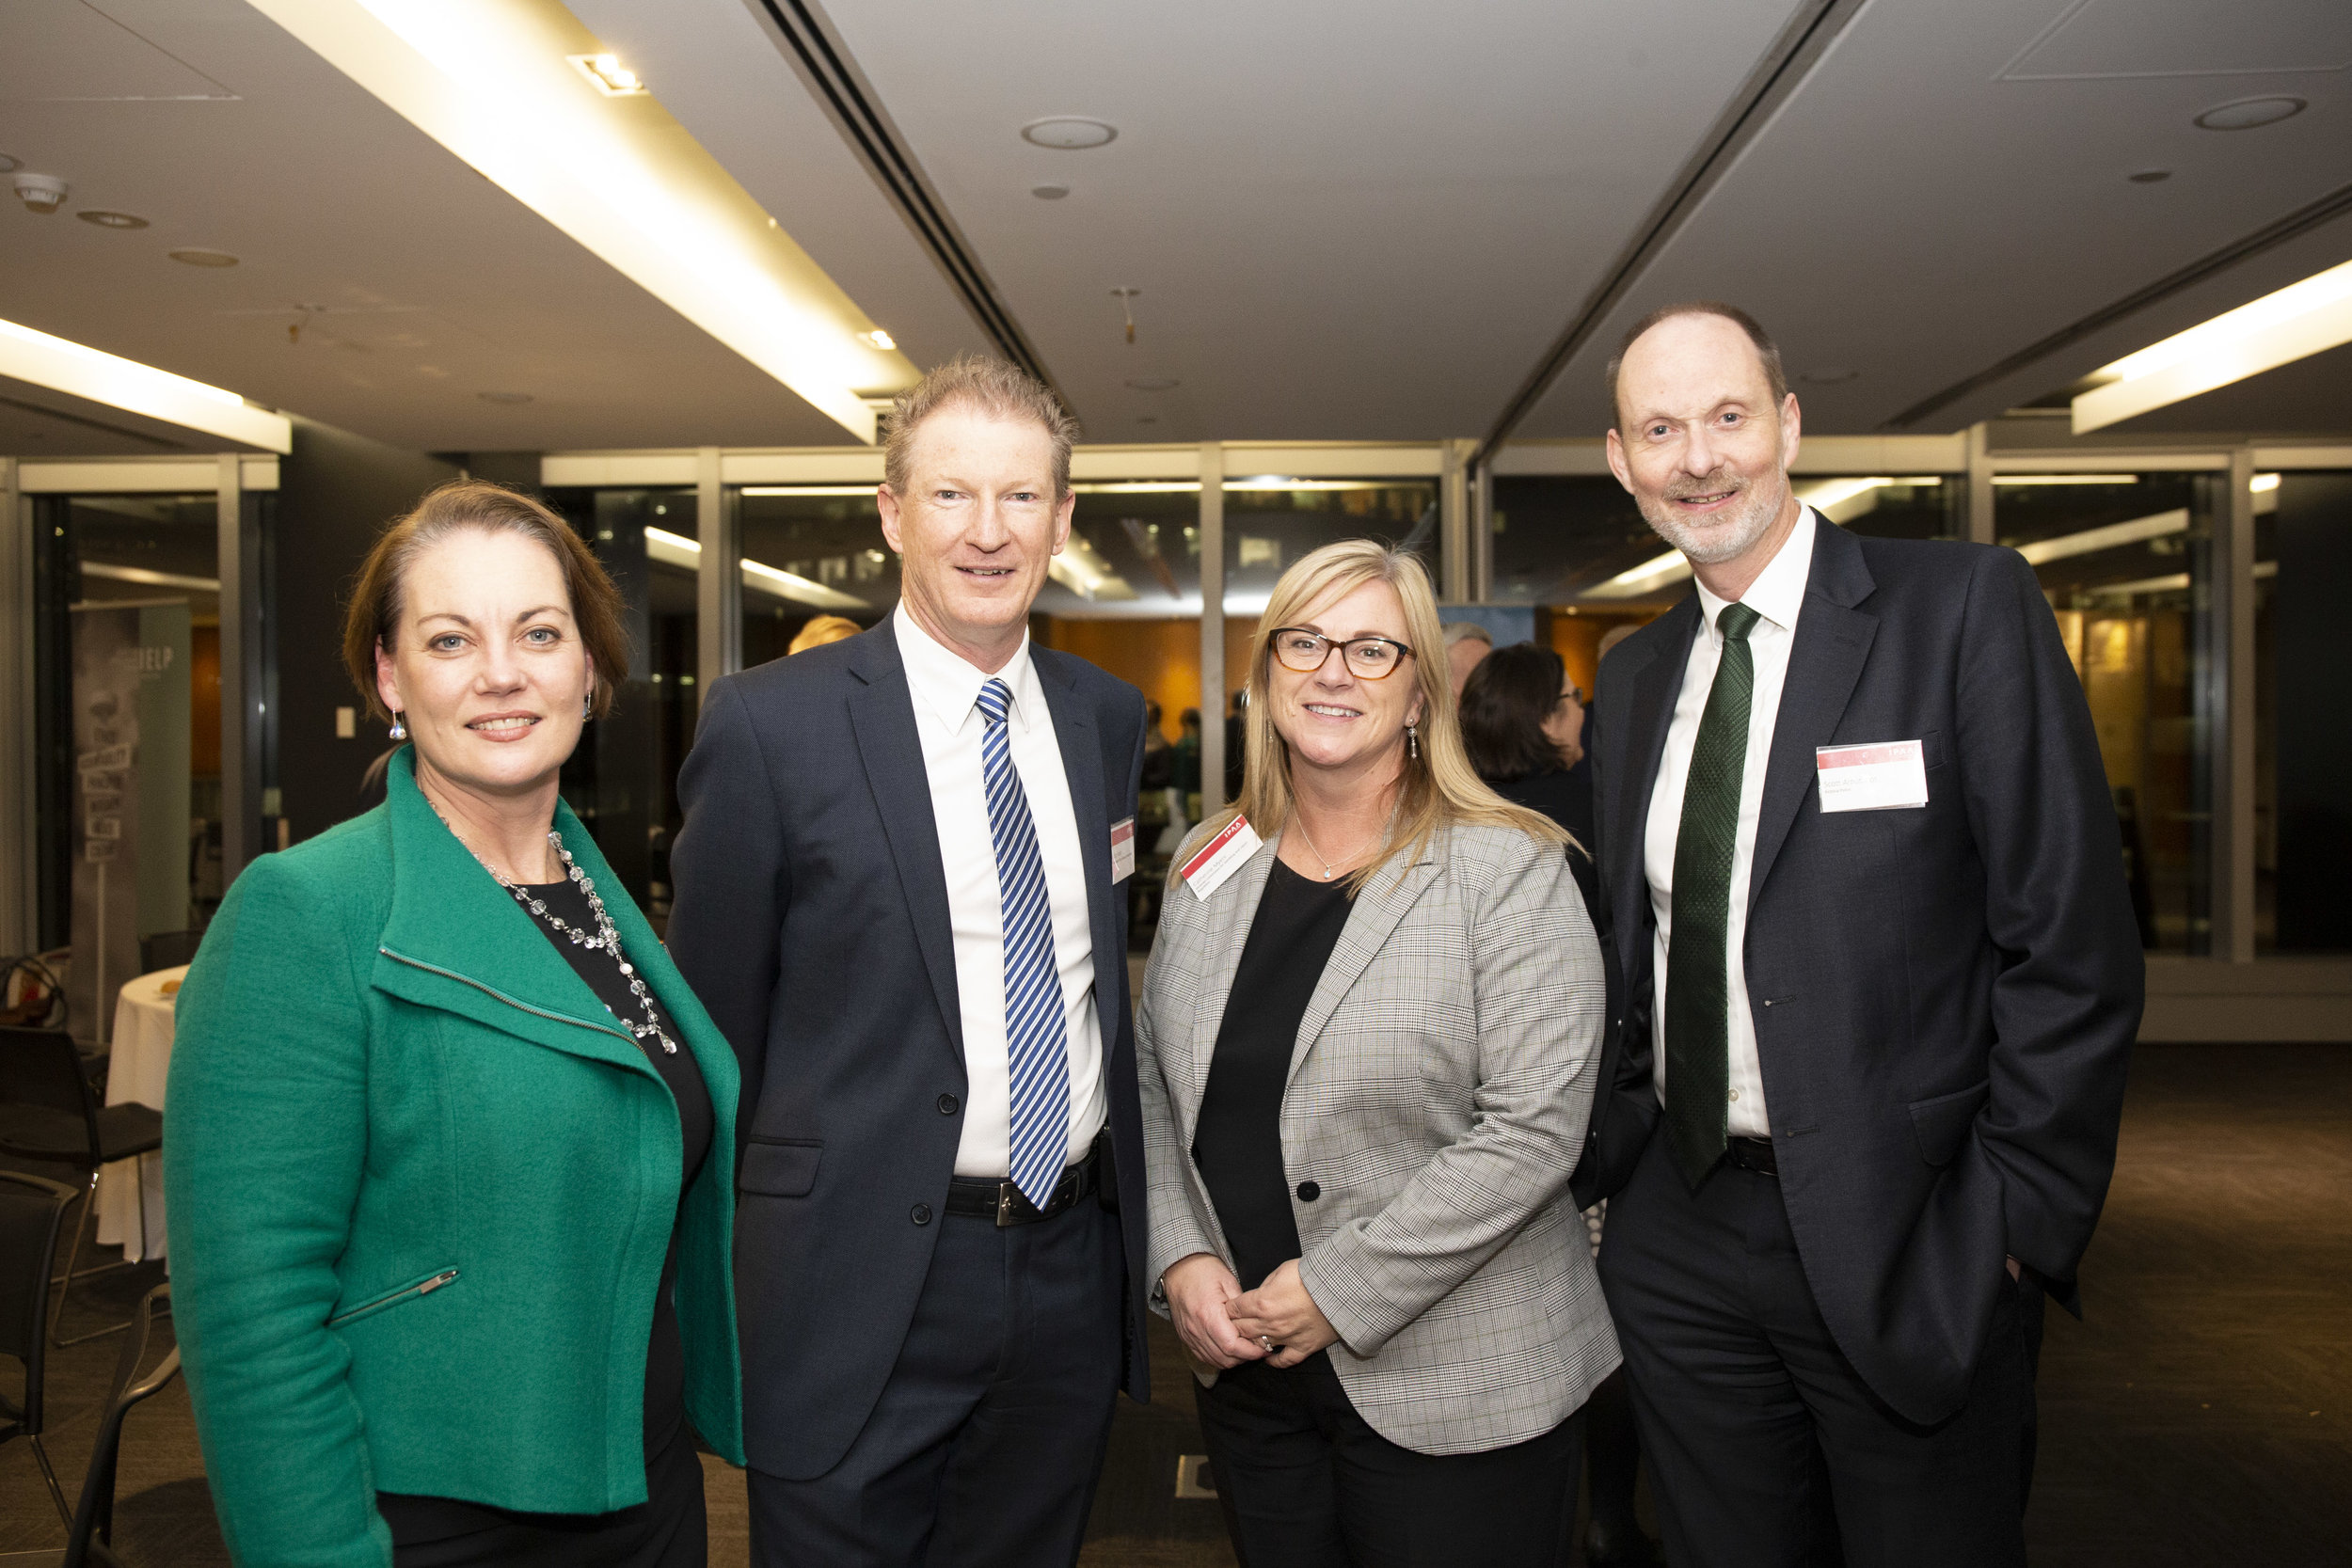 Left to right: IELP strategic advisor Jane Brockington with IELP alumni Greg Leach (MFB), Catherine Myers (VCGLR) and Scott Arbuthnot (Victoria Police)